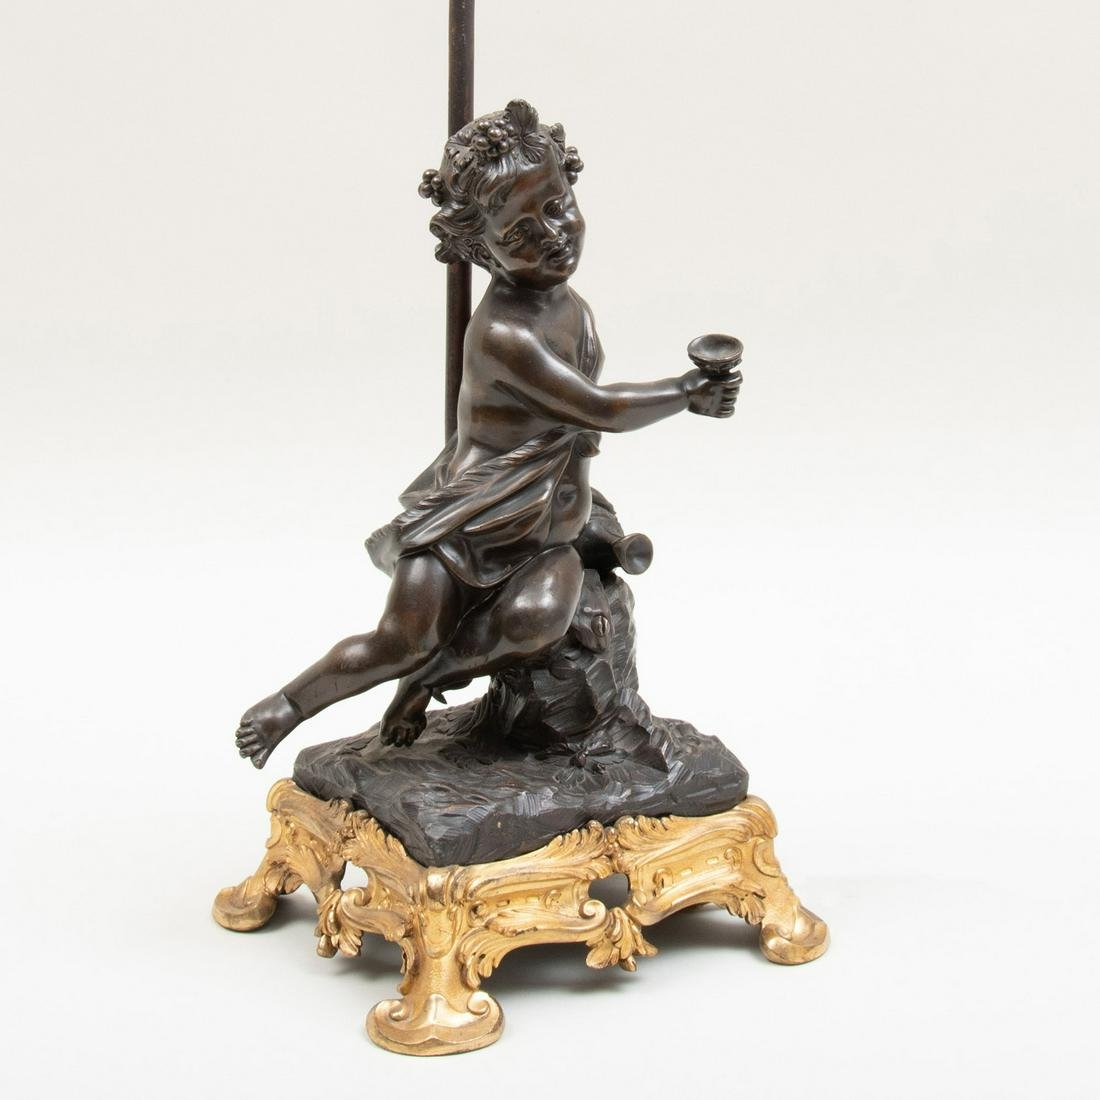 Louis XV Style Ormolu-Mounted-Bronze Putti Mounted as a